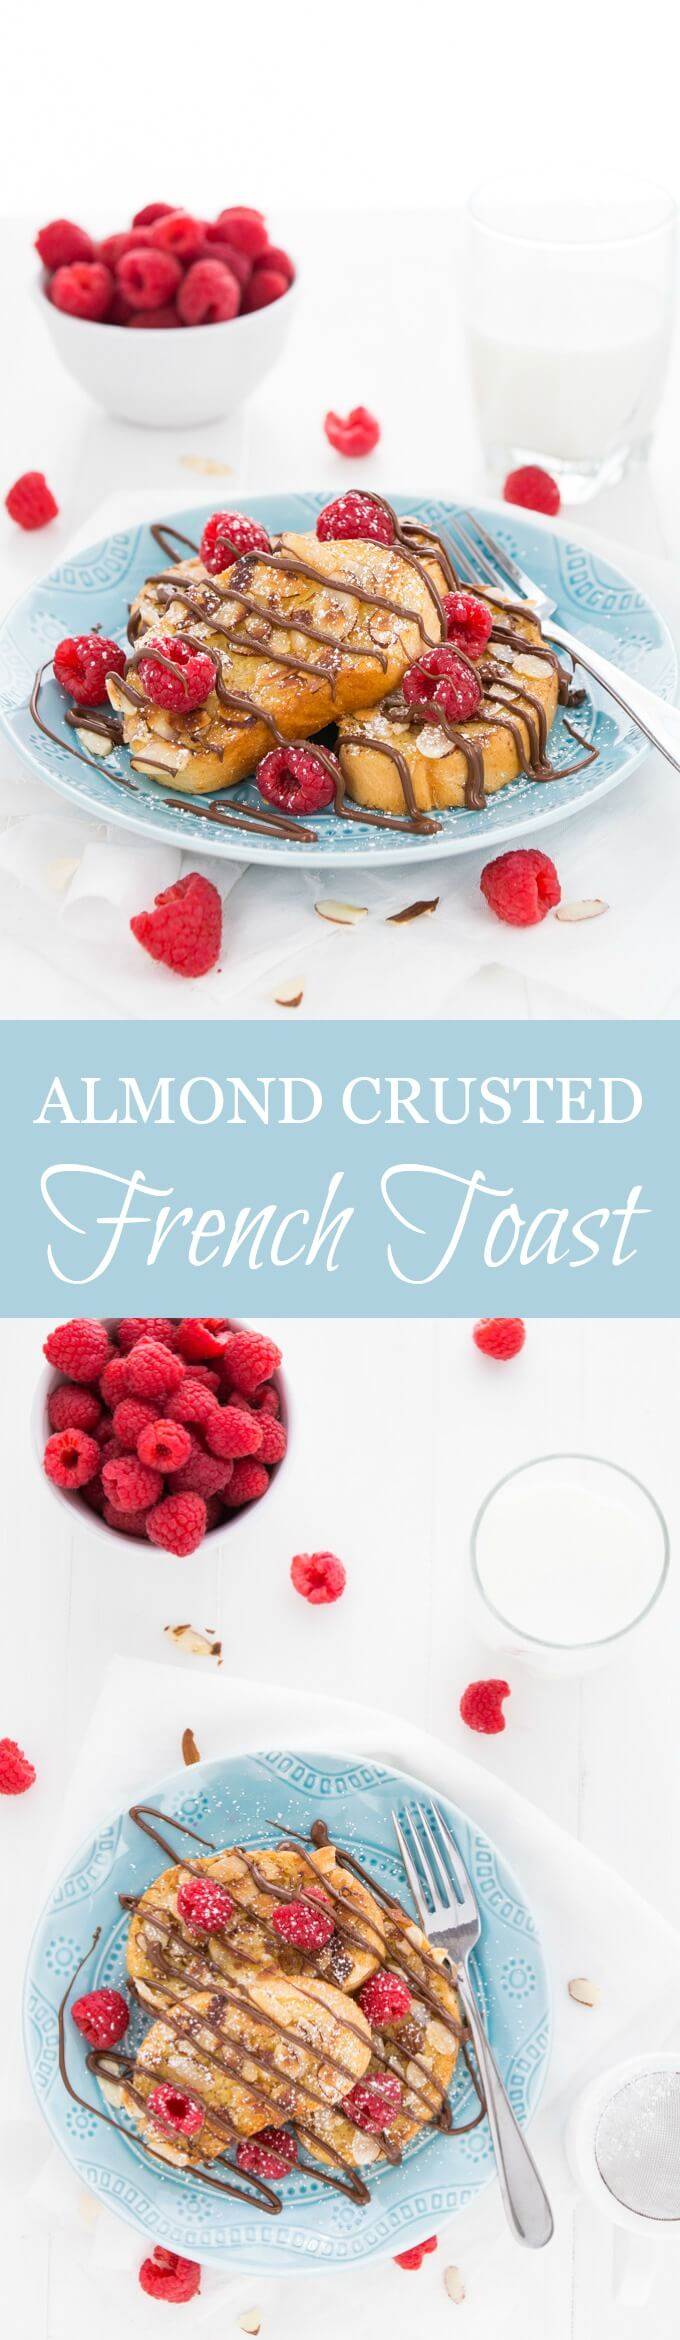 Almond Crusted French Toast is the perfect way to begin your day with the ones you love.